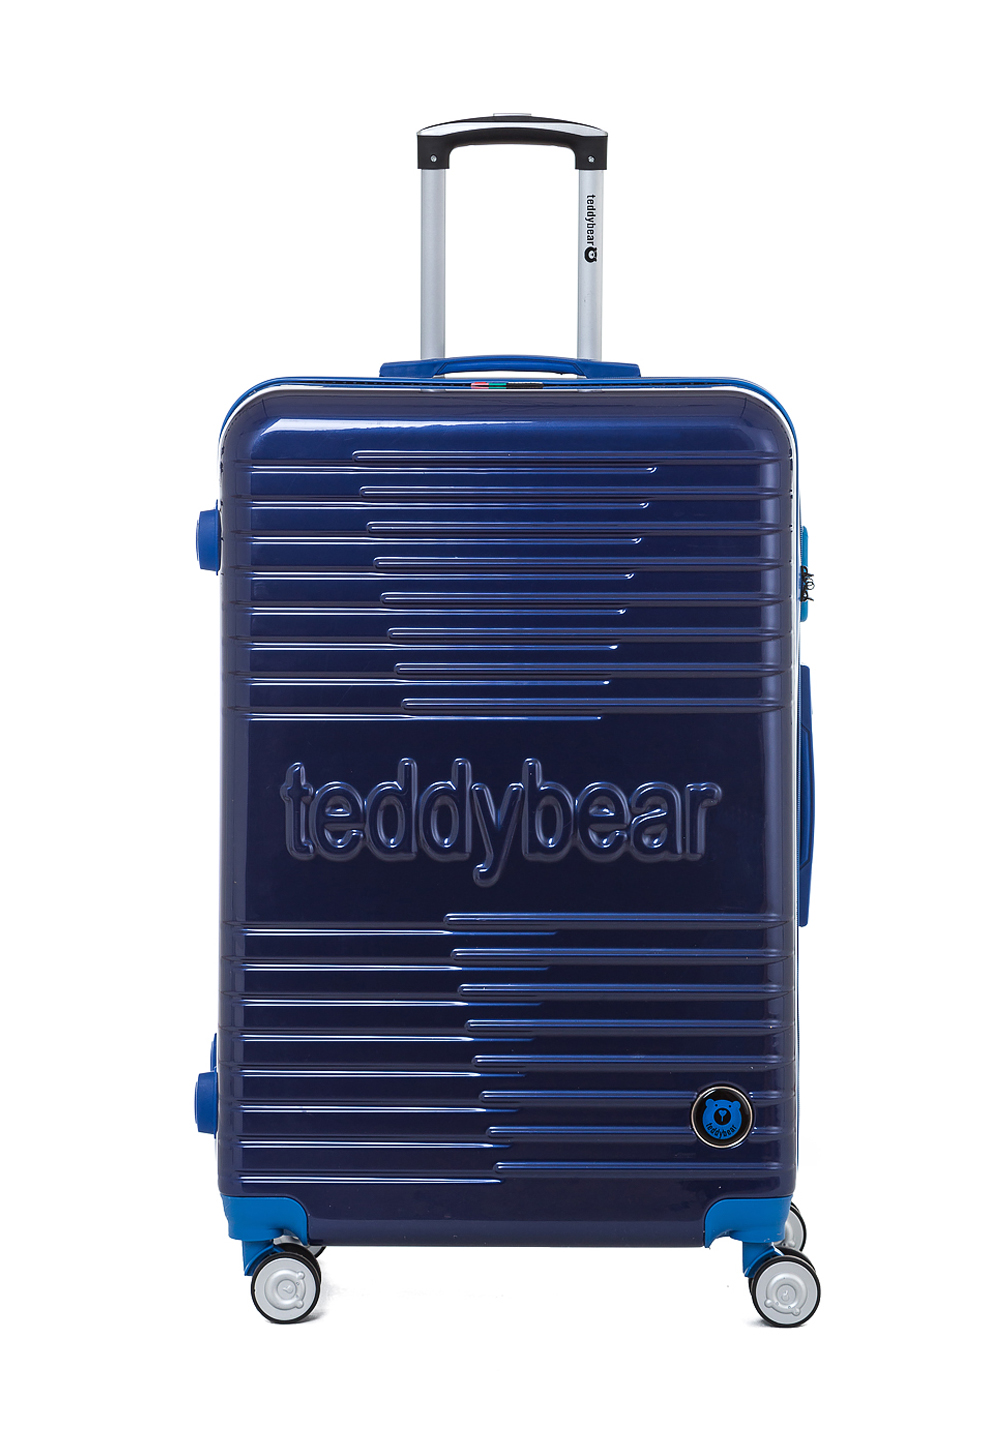 Teddy Bear Hartschalen-Trolley Sumire blau | Taschen > Koffer & Trolleys > Trolleys | Blau | Teddy Bear